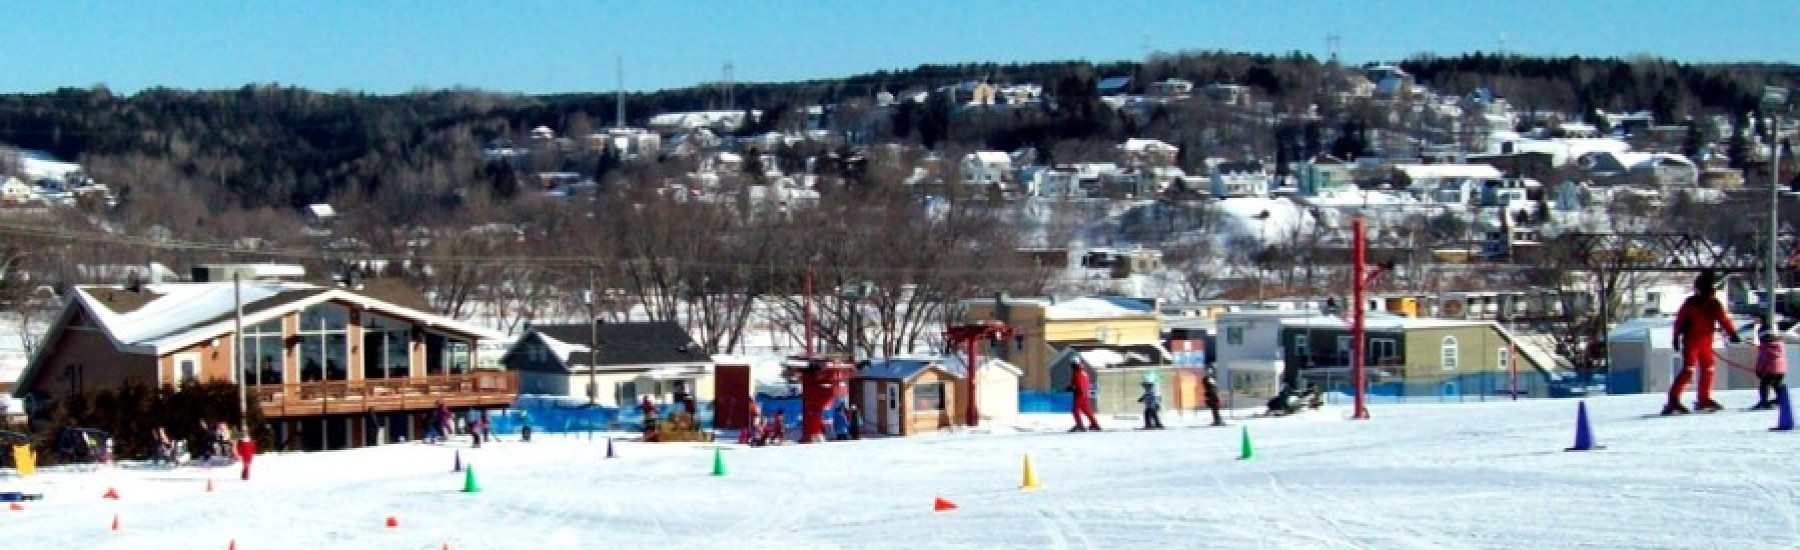 Club de ski de Beauce (1980) inc.